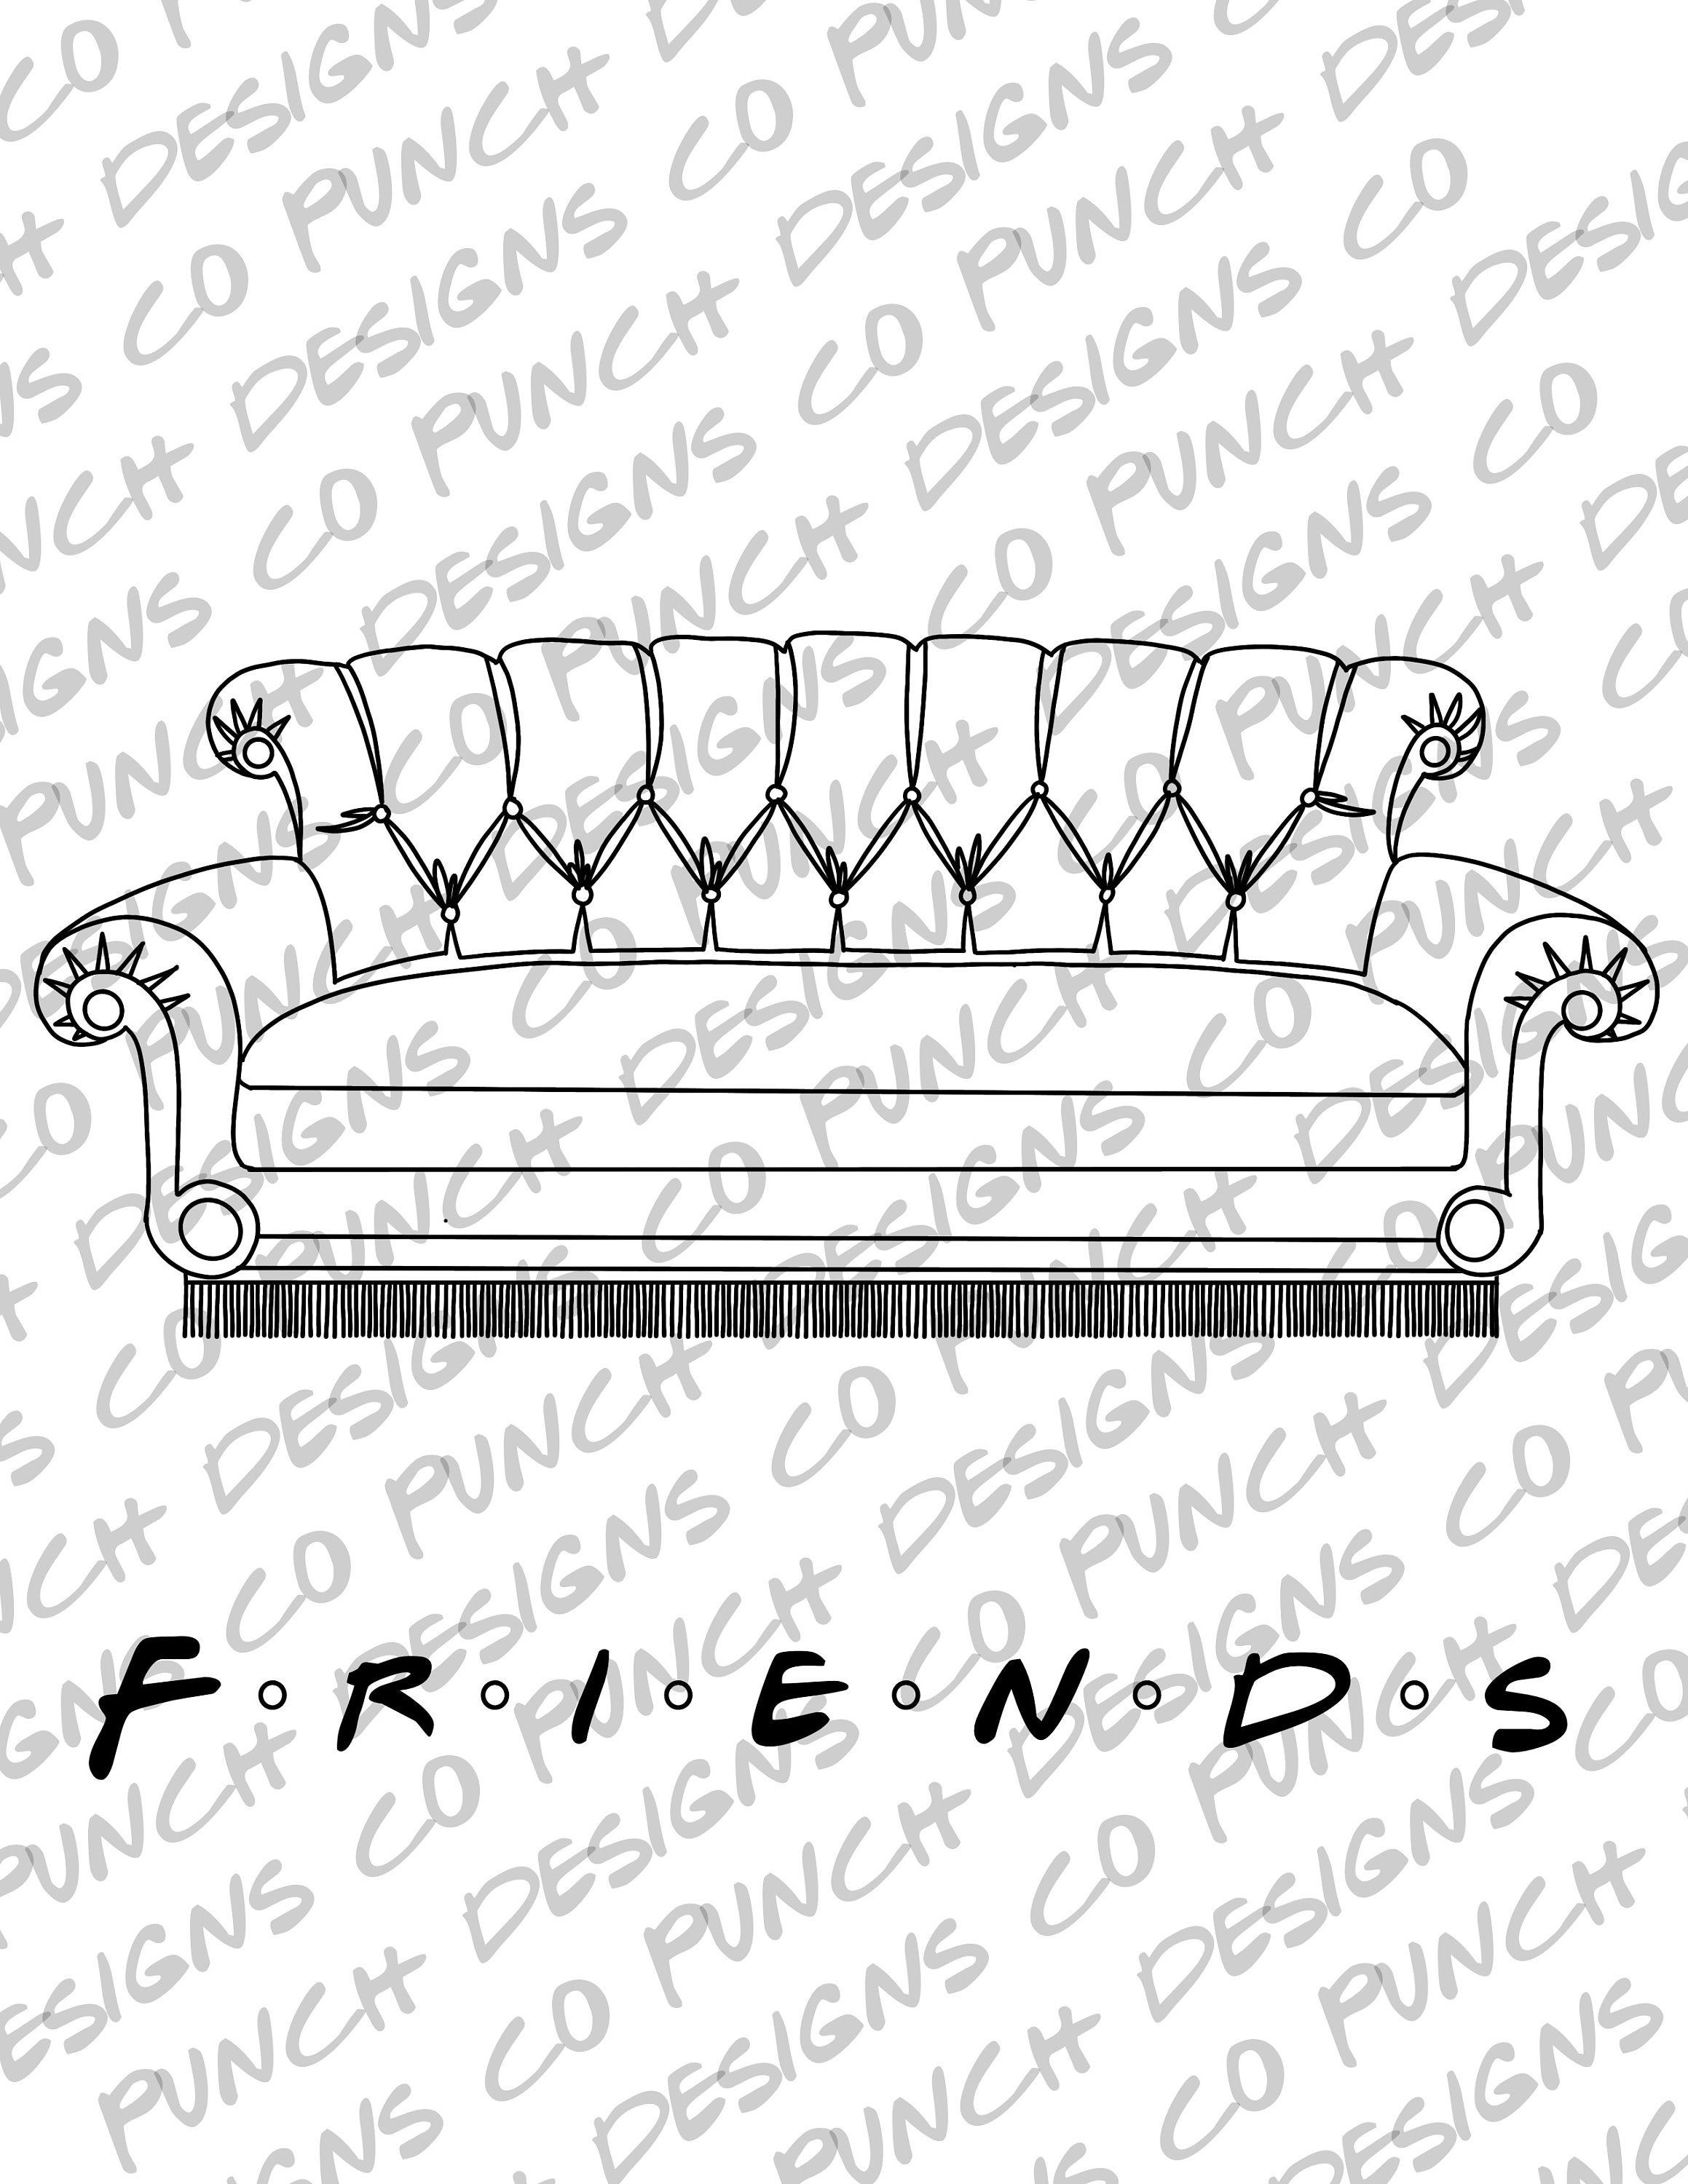 The Unofficial Friends Tv Show Printable Coloring Book Digital Download Coloring Book Printable Coloring Printable Coloring Book Friends Tv Show Friends Tv